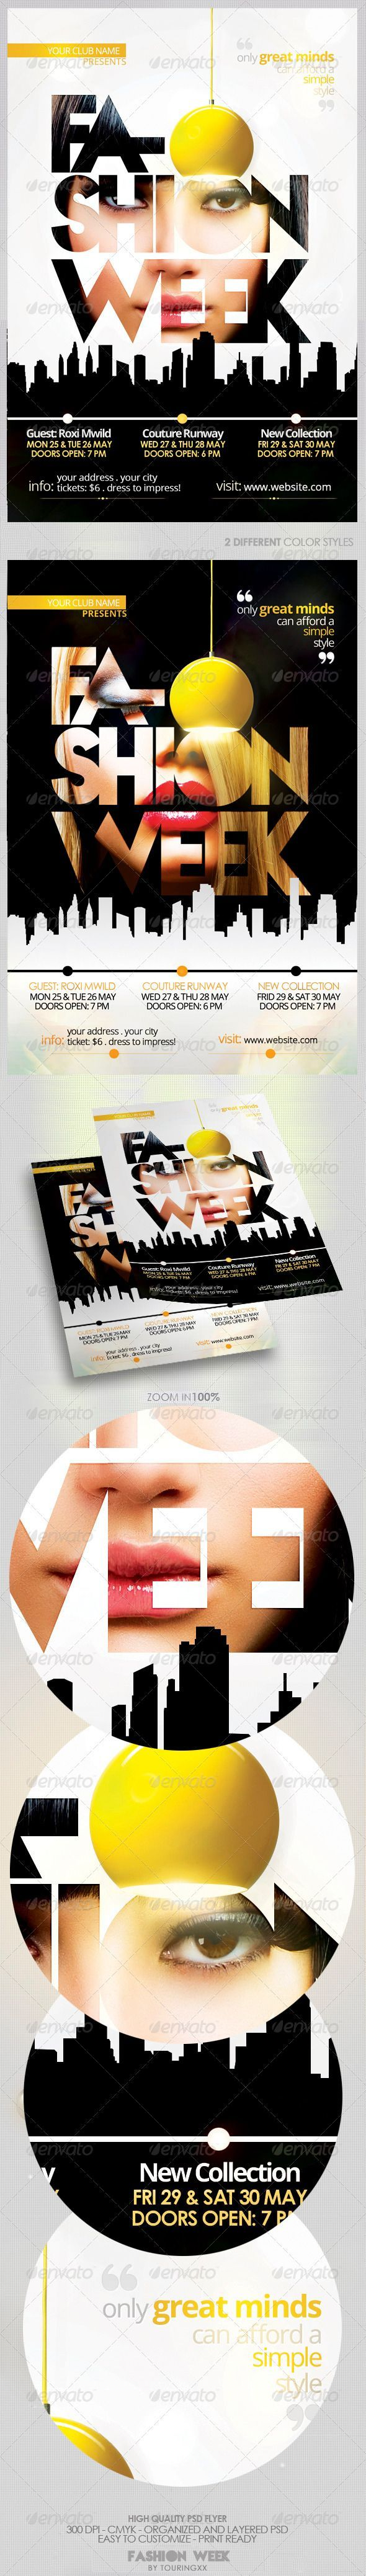 Fashion Week Vol 2 Flyer Template / $6. ***This flyer is perfect for the promotion of Fashion Events, Club Parties, Musicals, Festivals, Shops/Boutiques, New Collections, Concerts or Whatever You Want!.***: